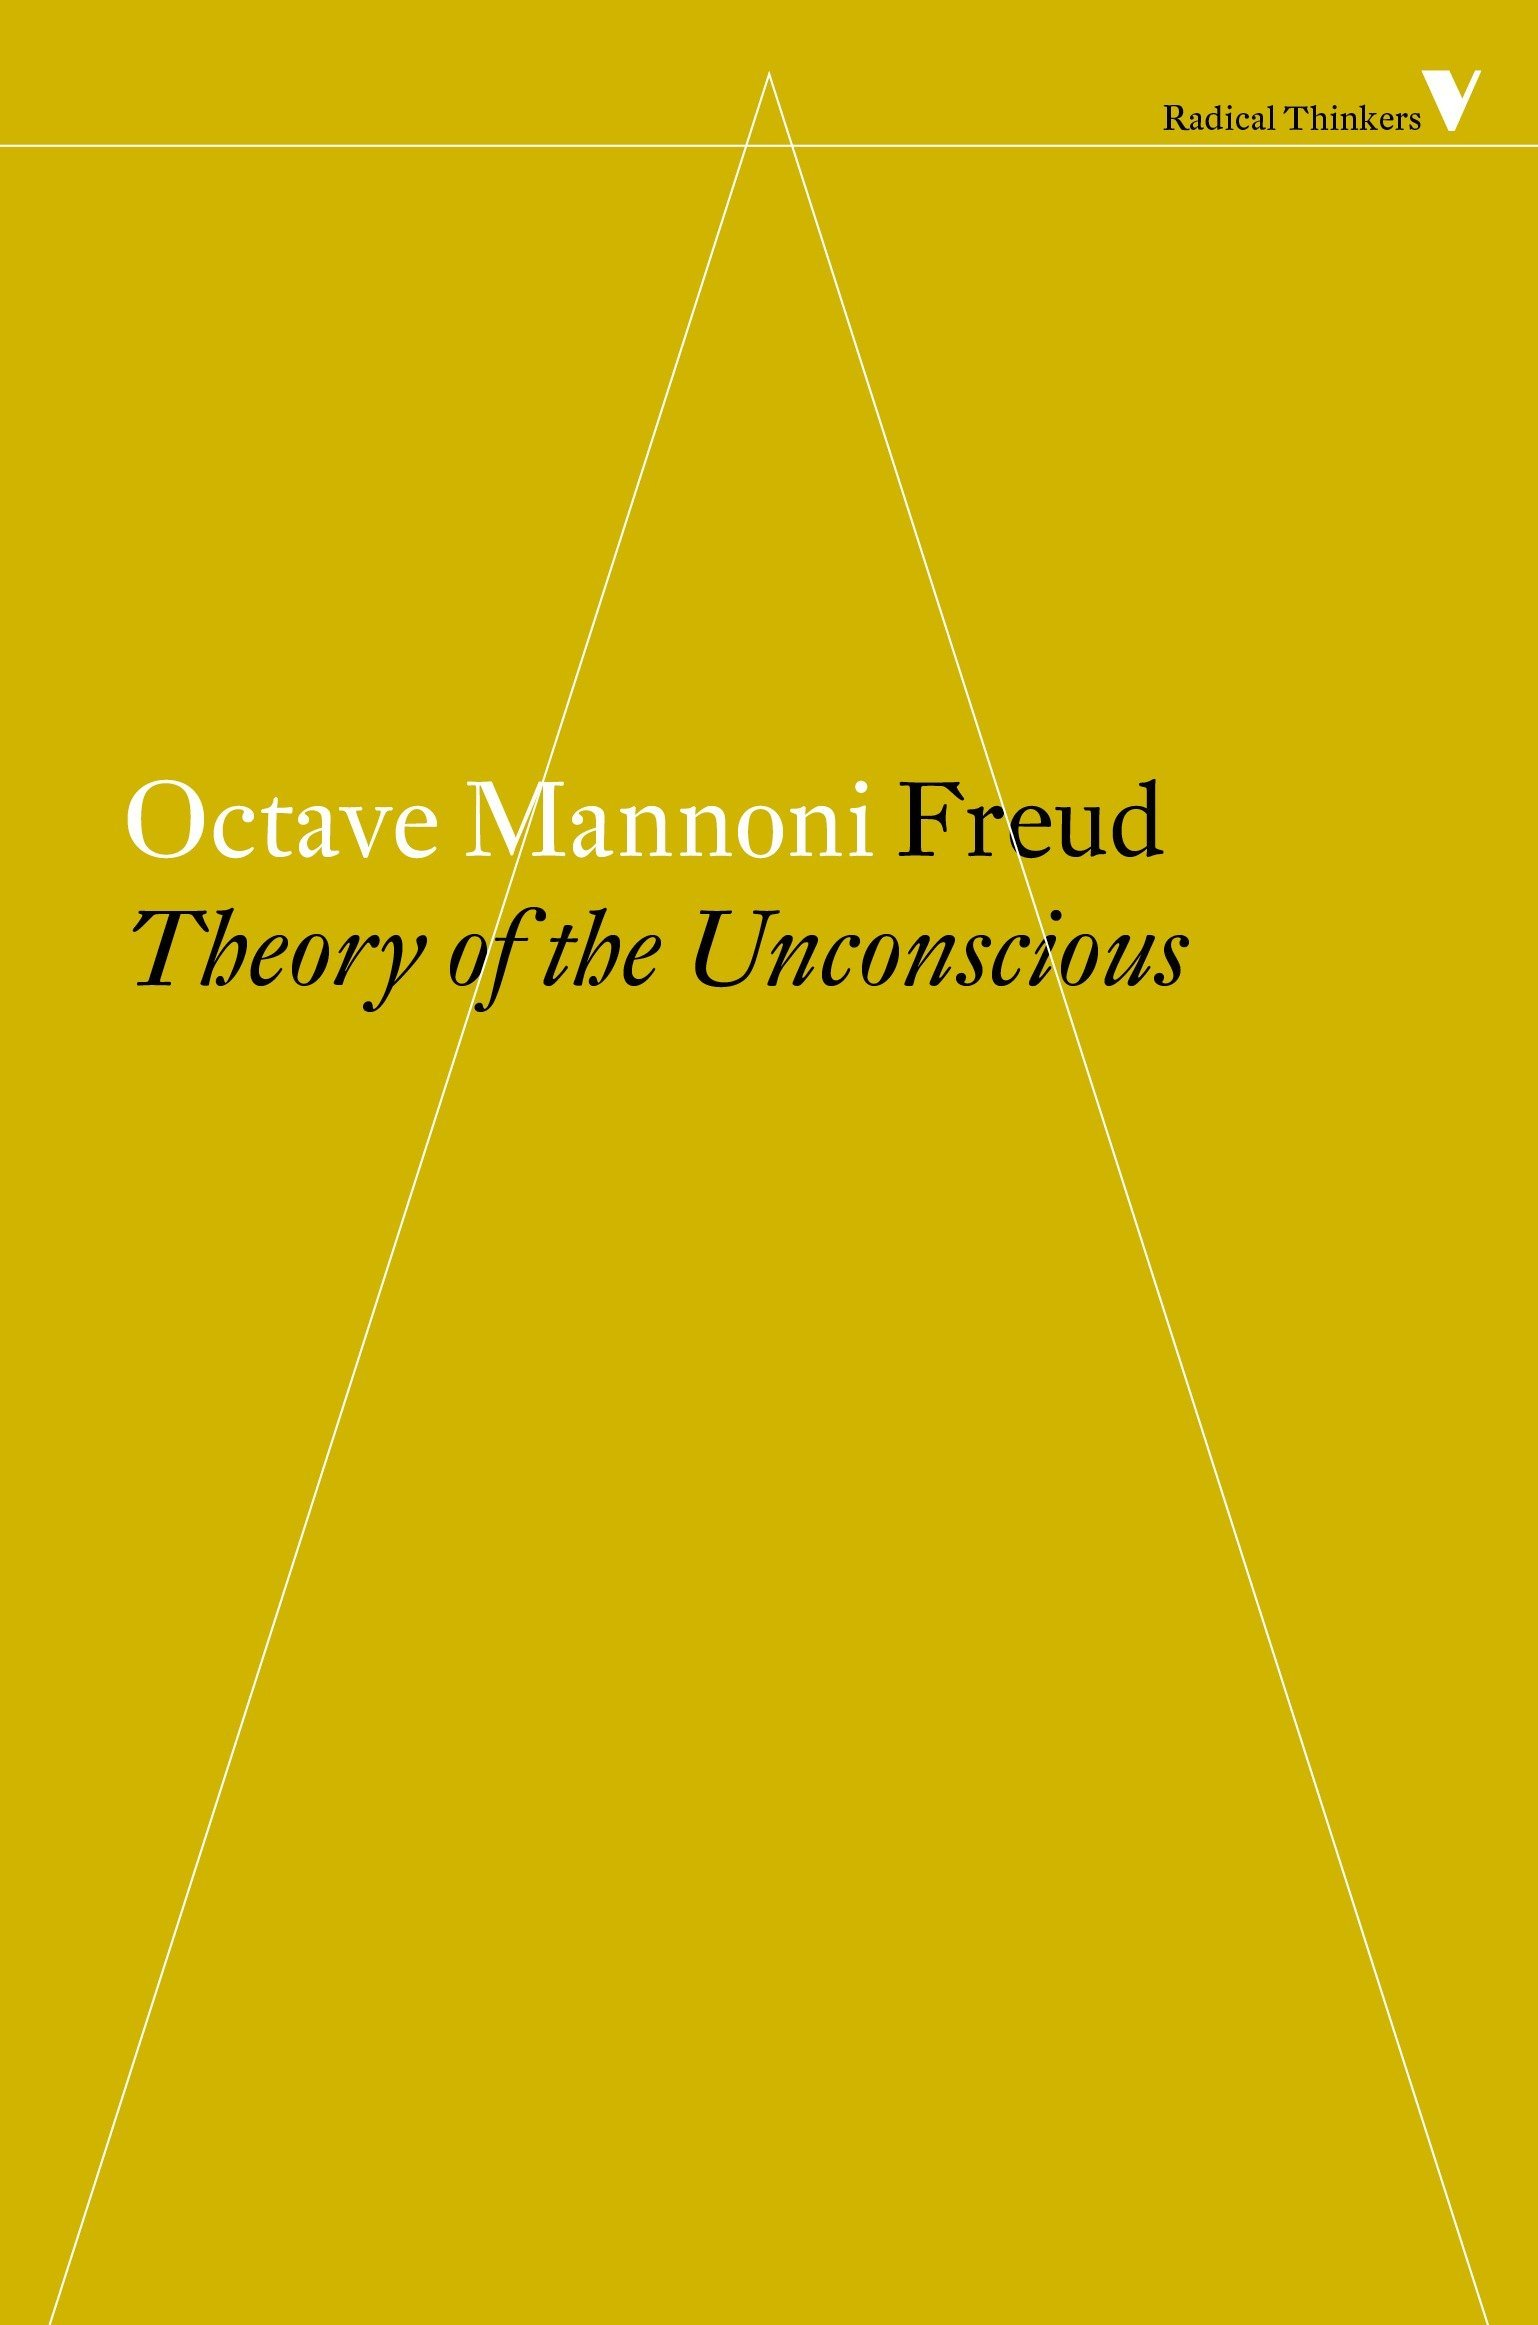 Download Freud: The Theory of the Unconscious (Radical Thinkers) PDF